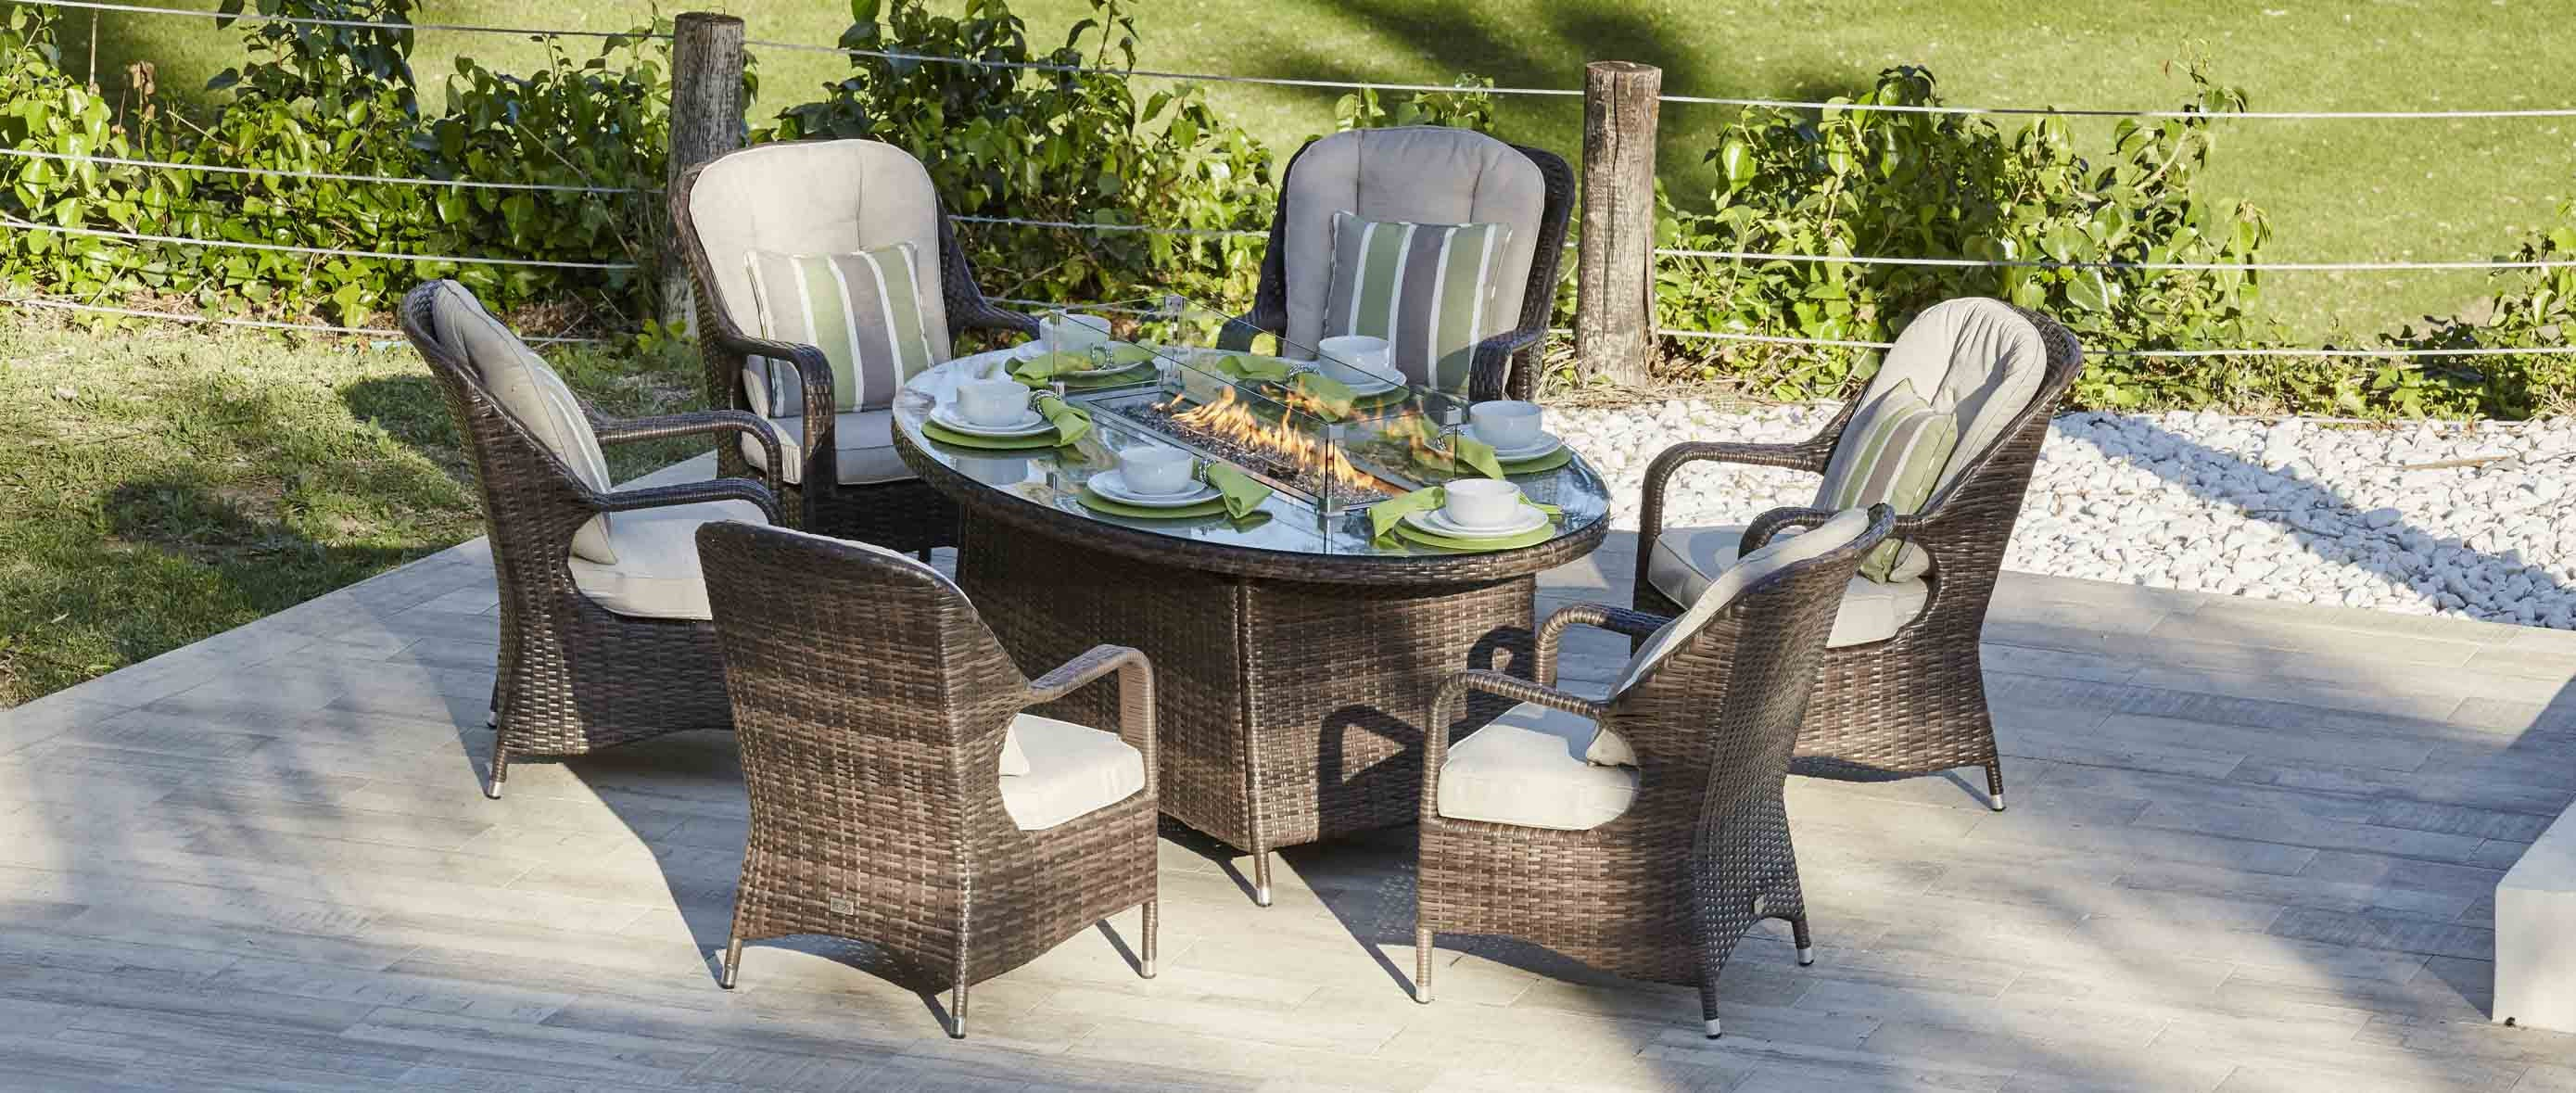 Sofia premium outdoor rattan dining set with gas fire pit 7 pcs preorder